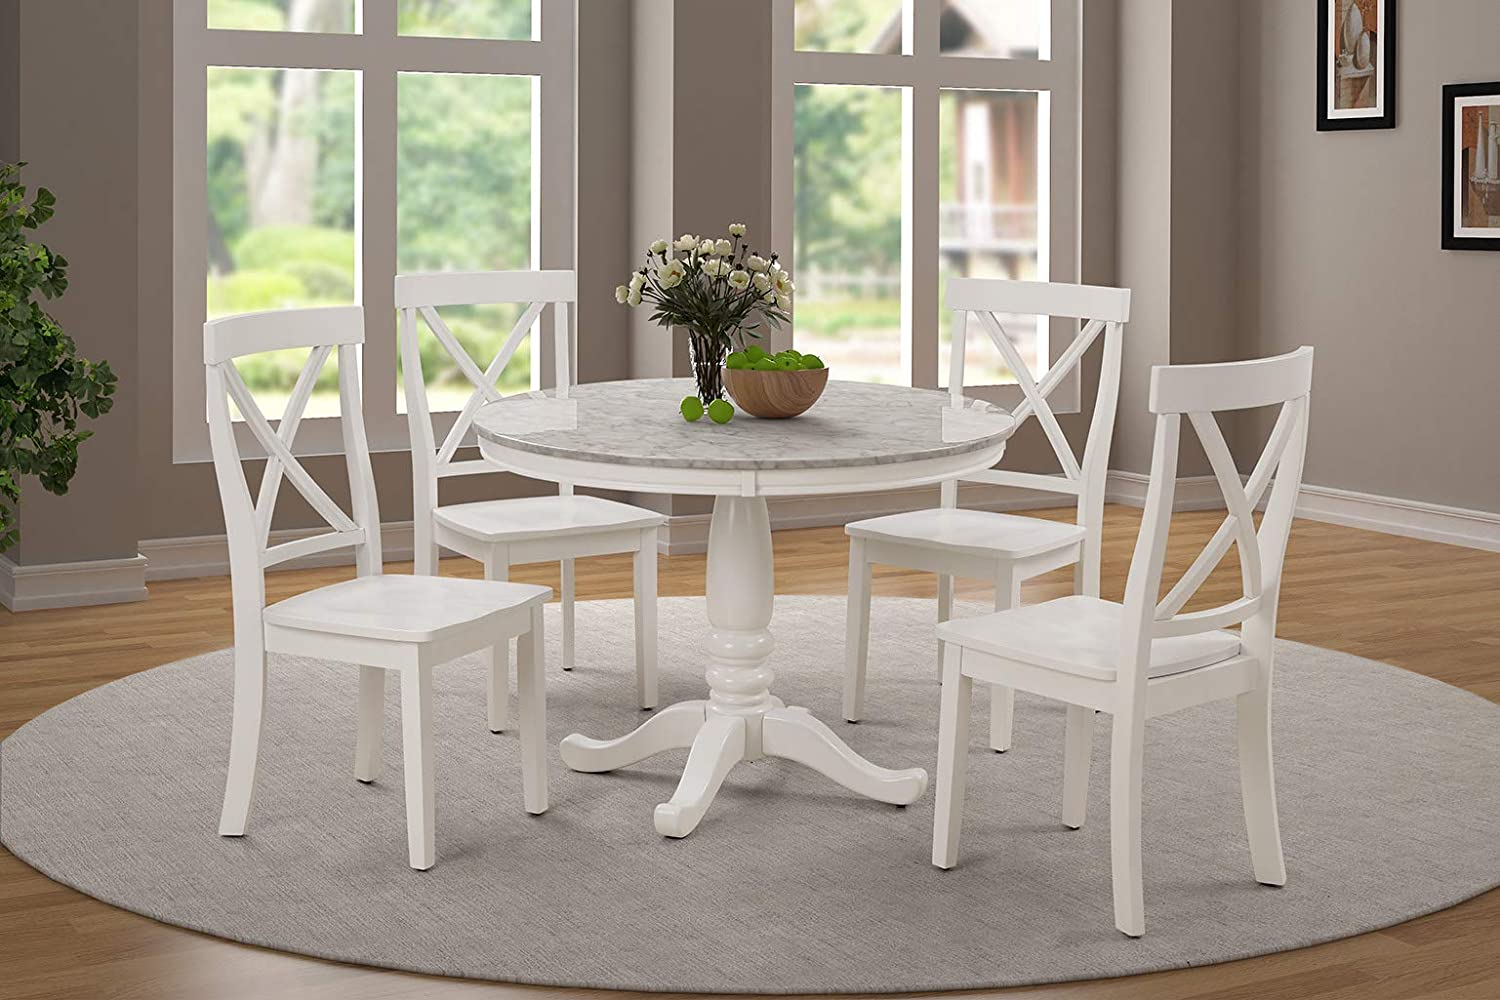 Harper&Bright Designs 5 Piece Dining Set Rubber Wood/ 1 Table with Wood top of Marble Grain and 4 Chair/Kitchen Table Set Dining Room Furniture (White)